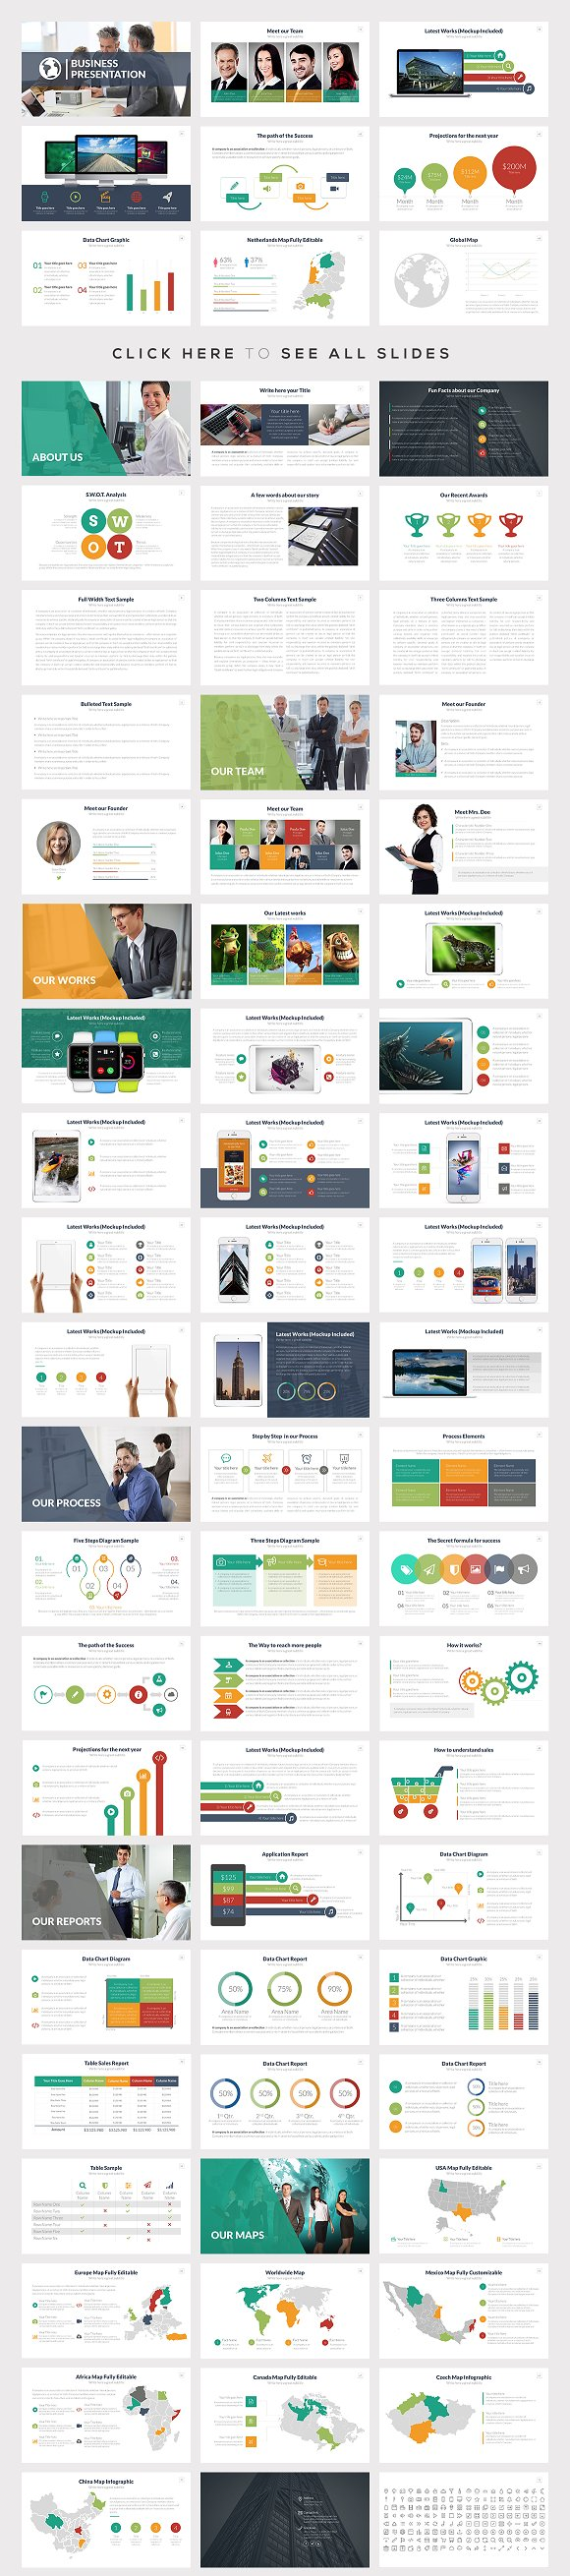 Best powerpoint templates bundle presentation templates creative best powerpoint templates bundle presentation templates creative market flashek Images